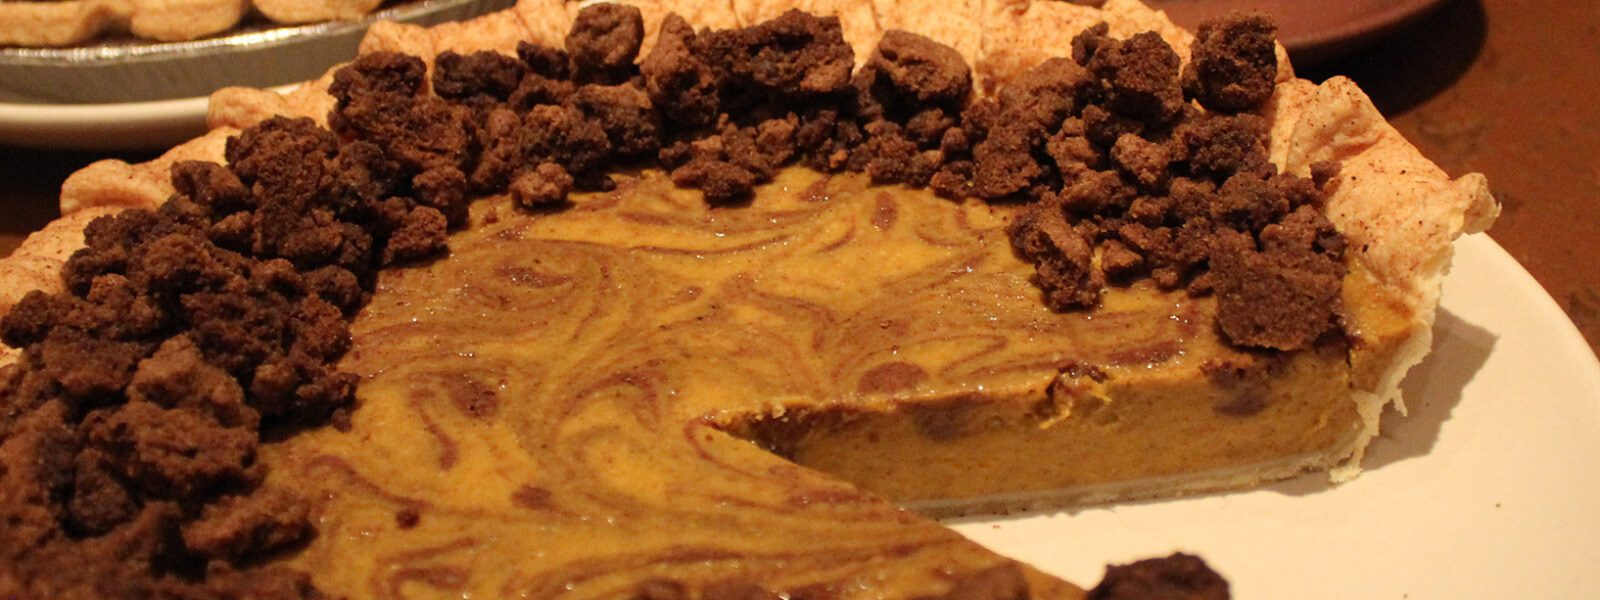 Pumpkin pie with spice crust and cookie butter accent.